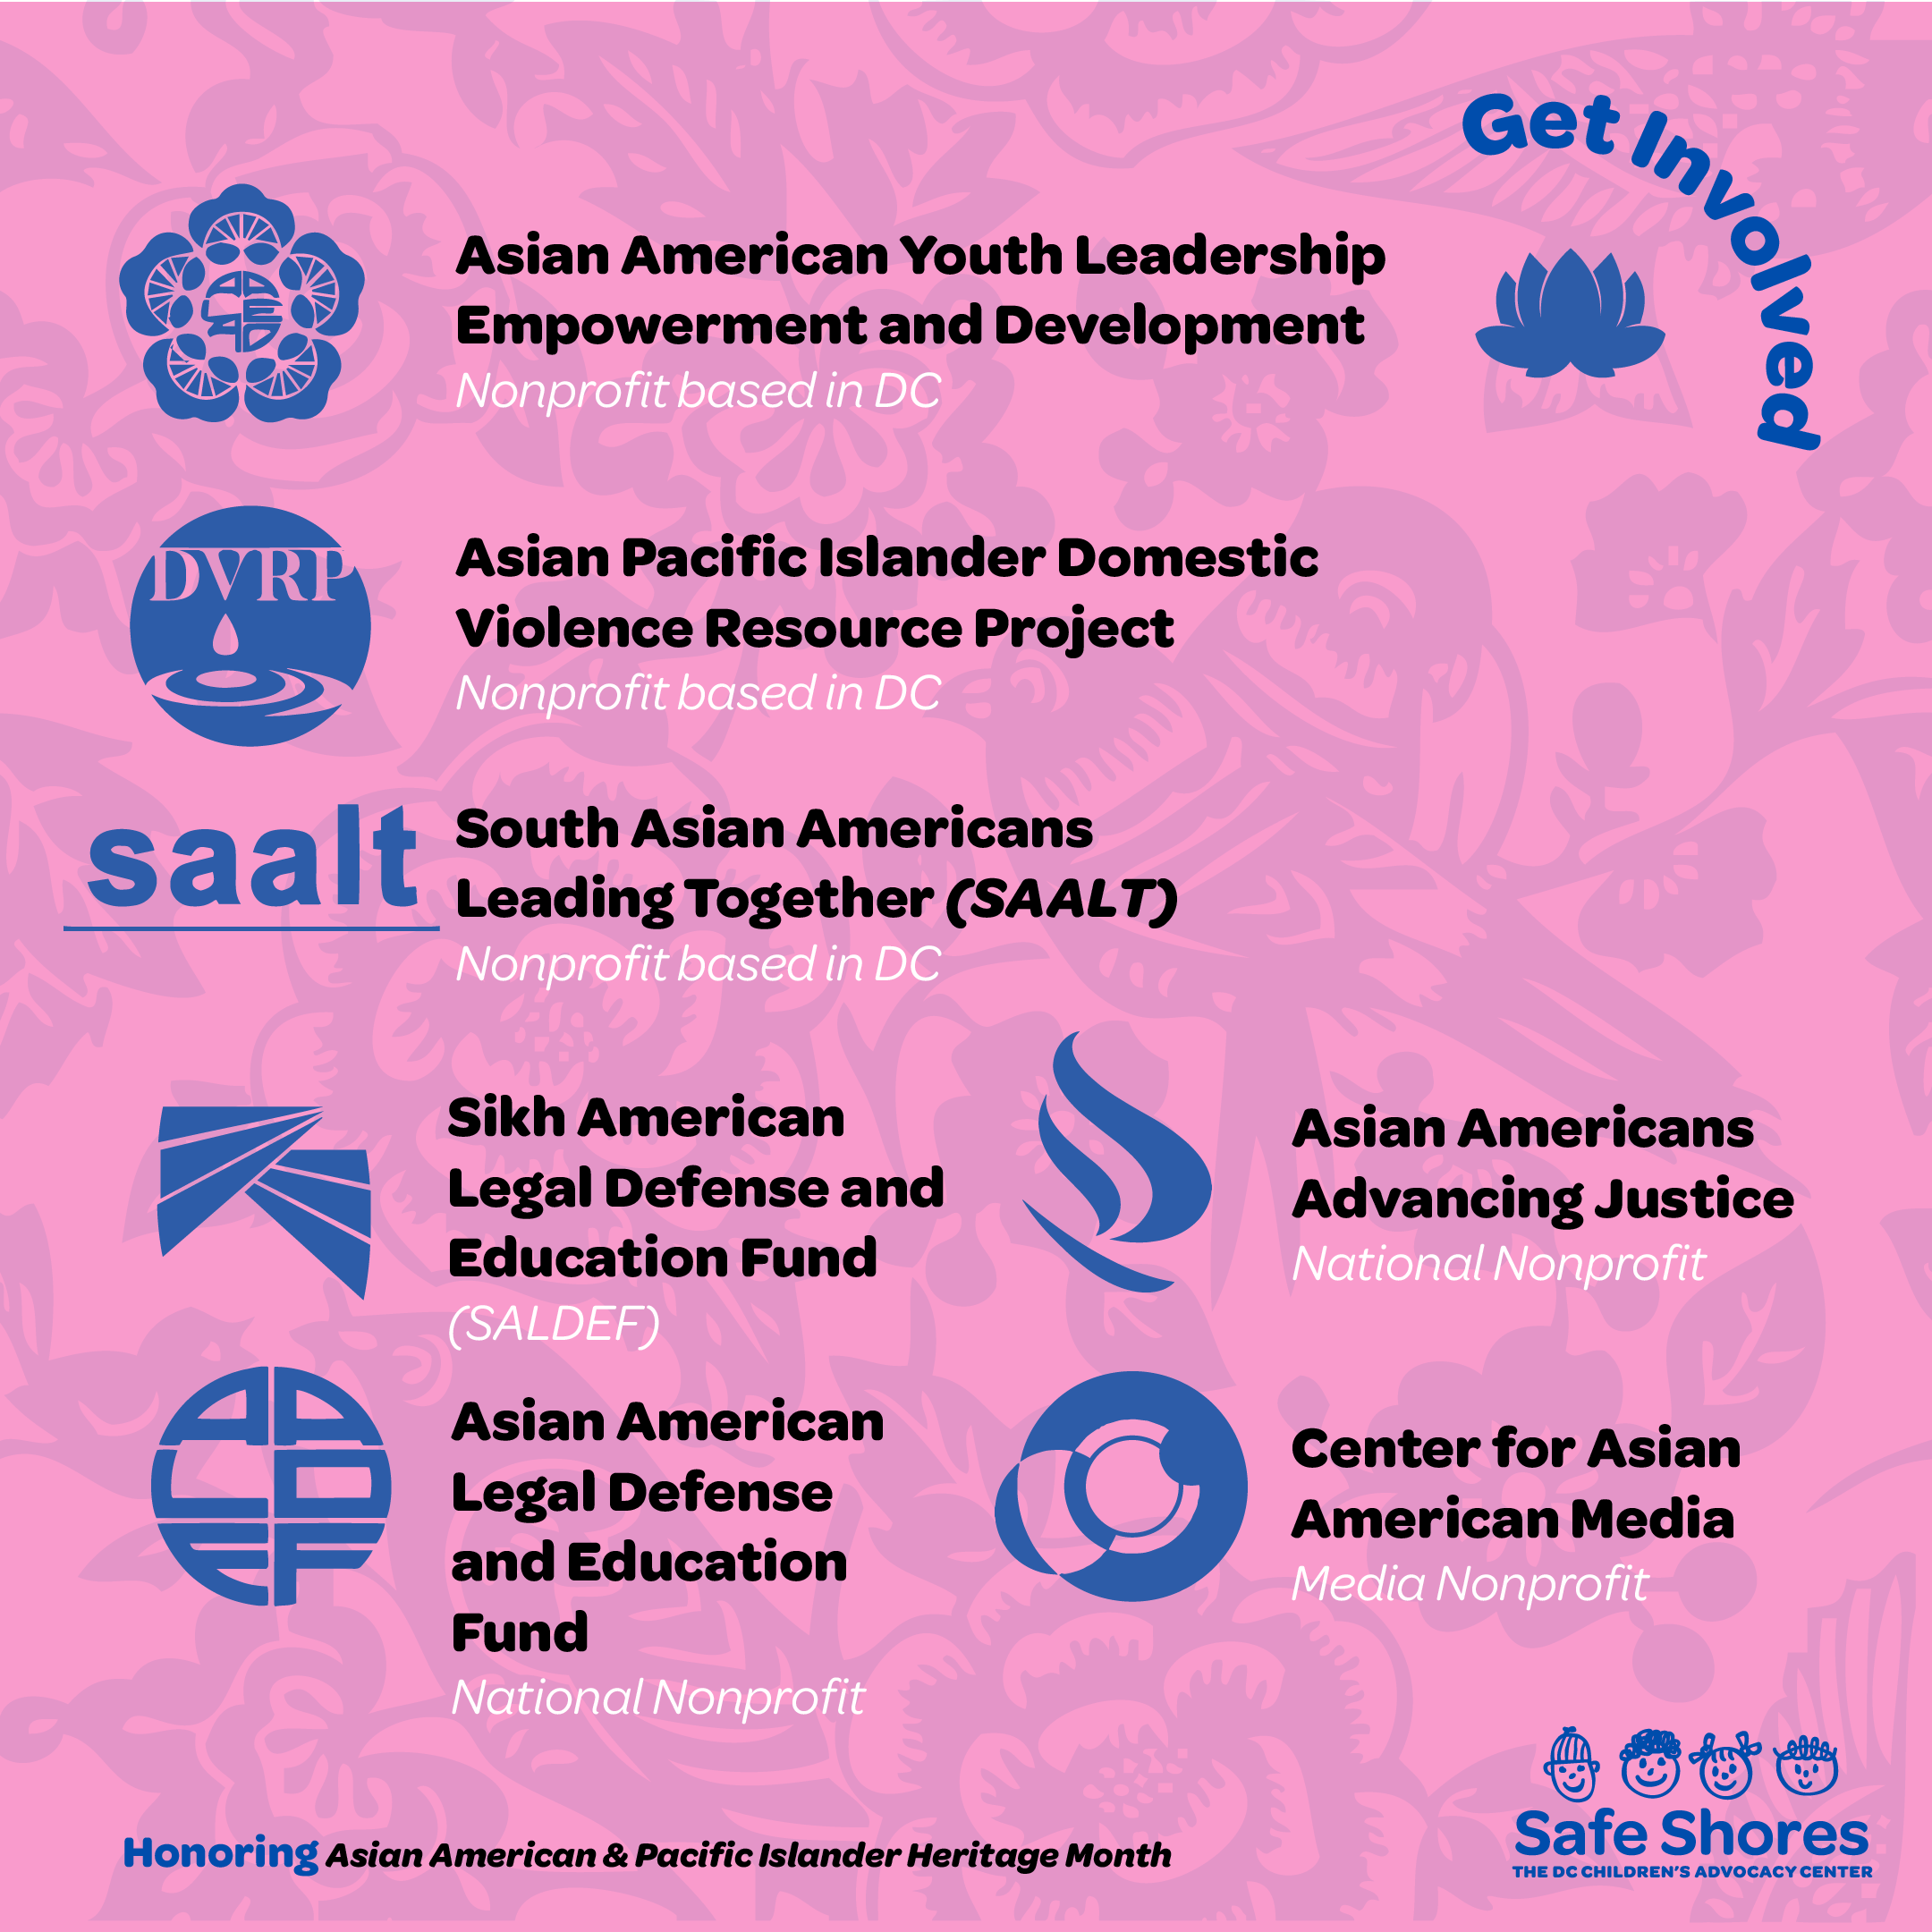 Get involved with these organizations for American and Pacific Islander Heritage Month. Organizations listed are: 1. AsianAmerican Youth Leadership Empowerment and Development 2. AsianPacific Islander Domestic Violence Resource Project 3. South Asian Americans Leading Together 4. Sikh American Legal Defense and Education Fund 5. AsianAmerican Legal Defense and Education Fund 6. AsianAmericans Advancing Justice 7. Center forAsianAmerican Media